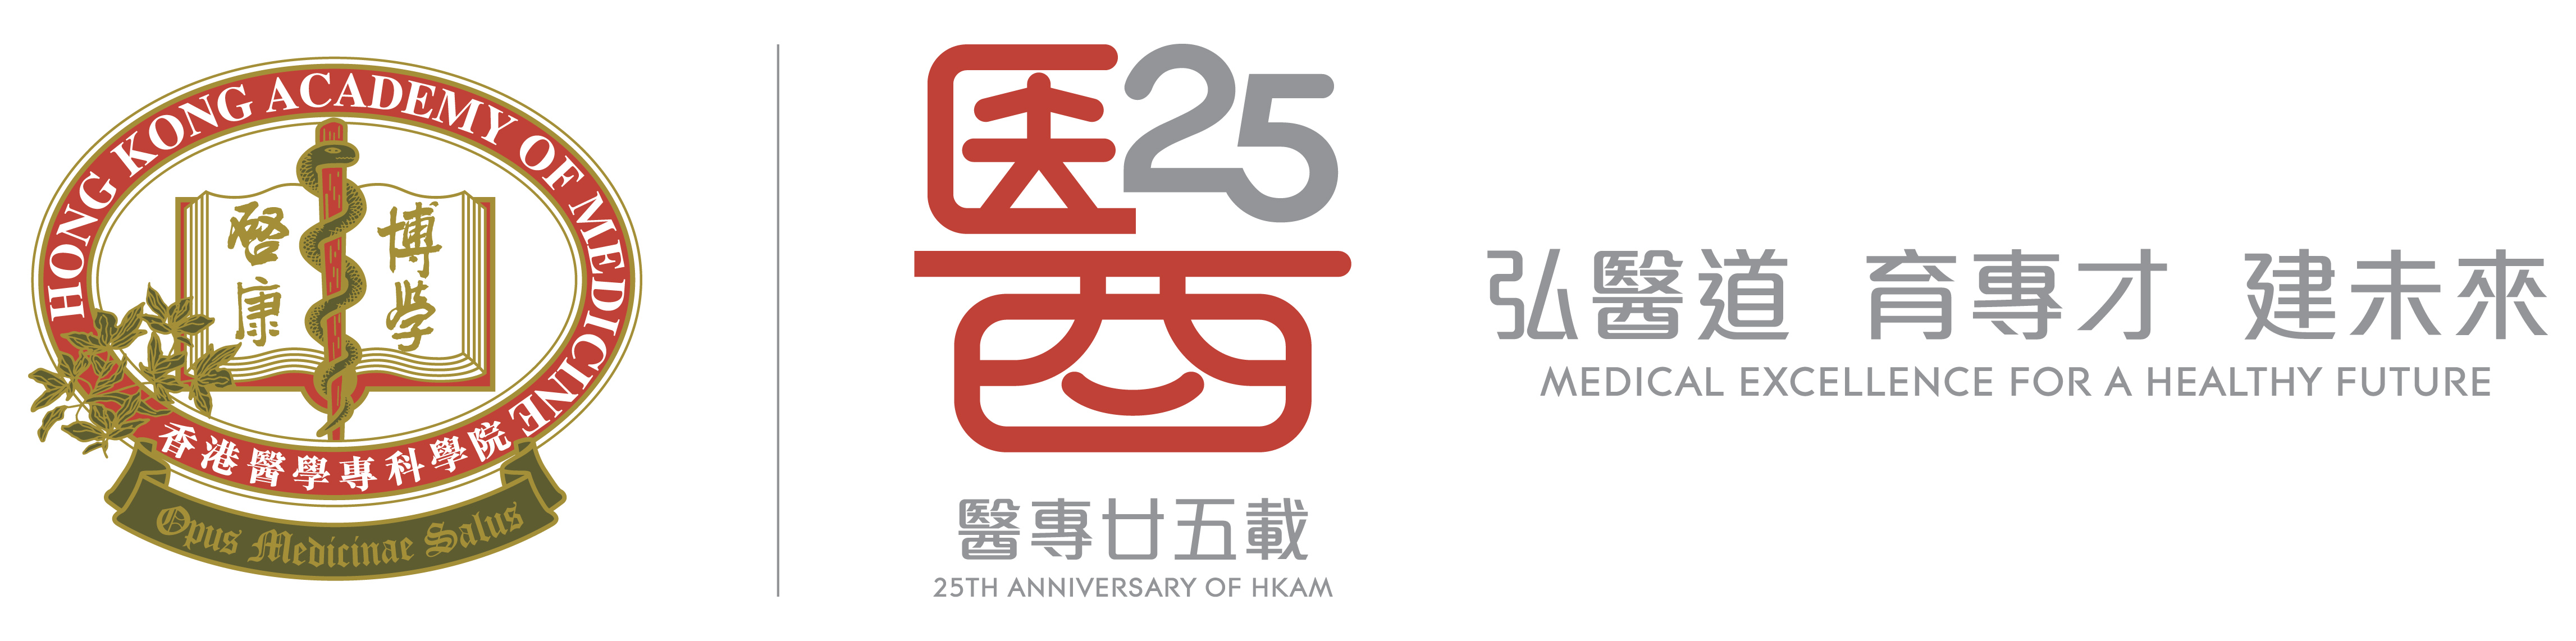 HKAM 25th Anniversary in 2018